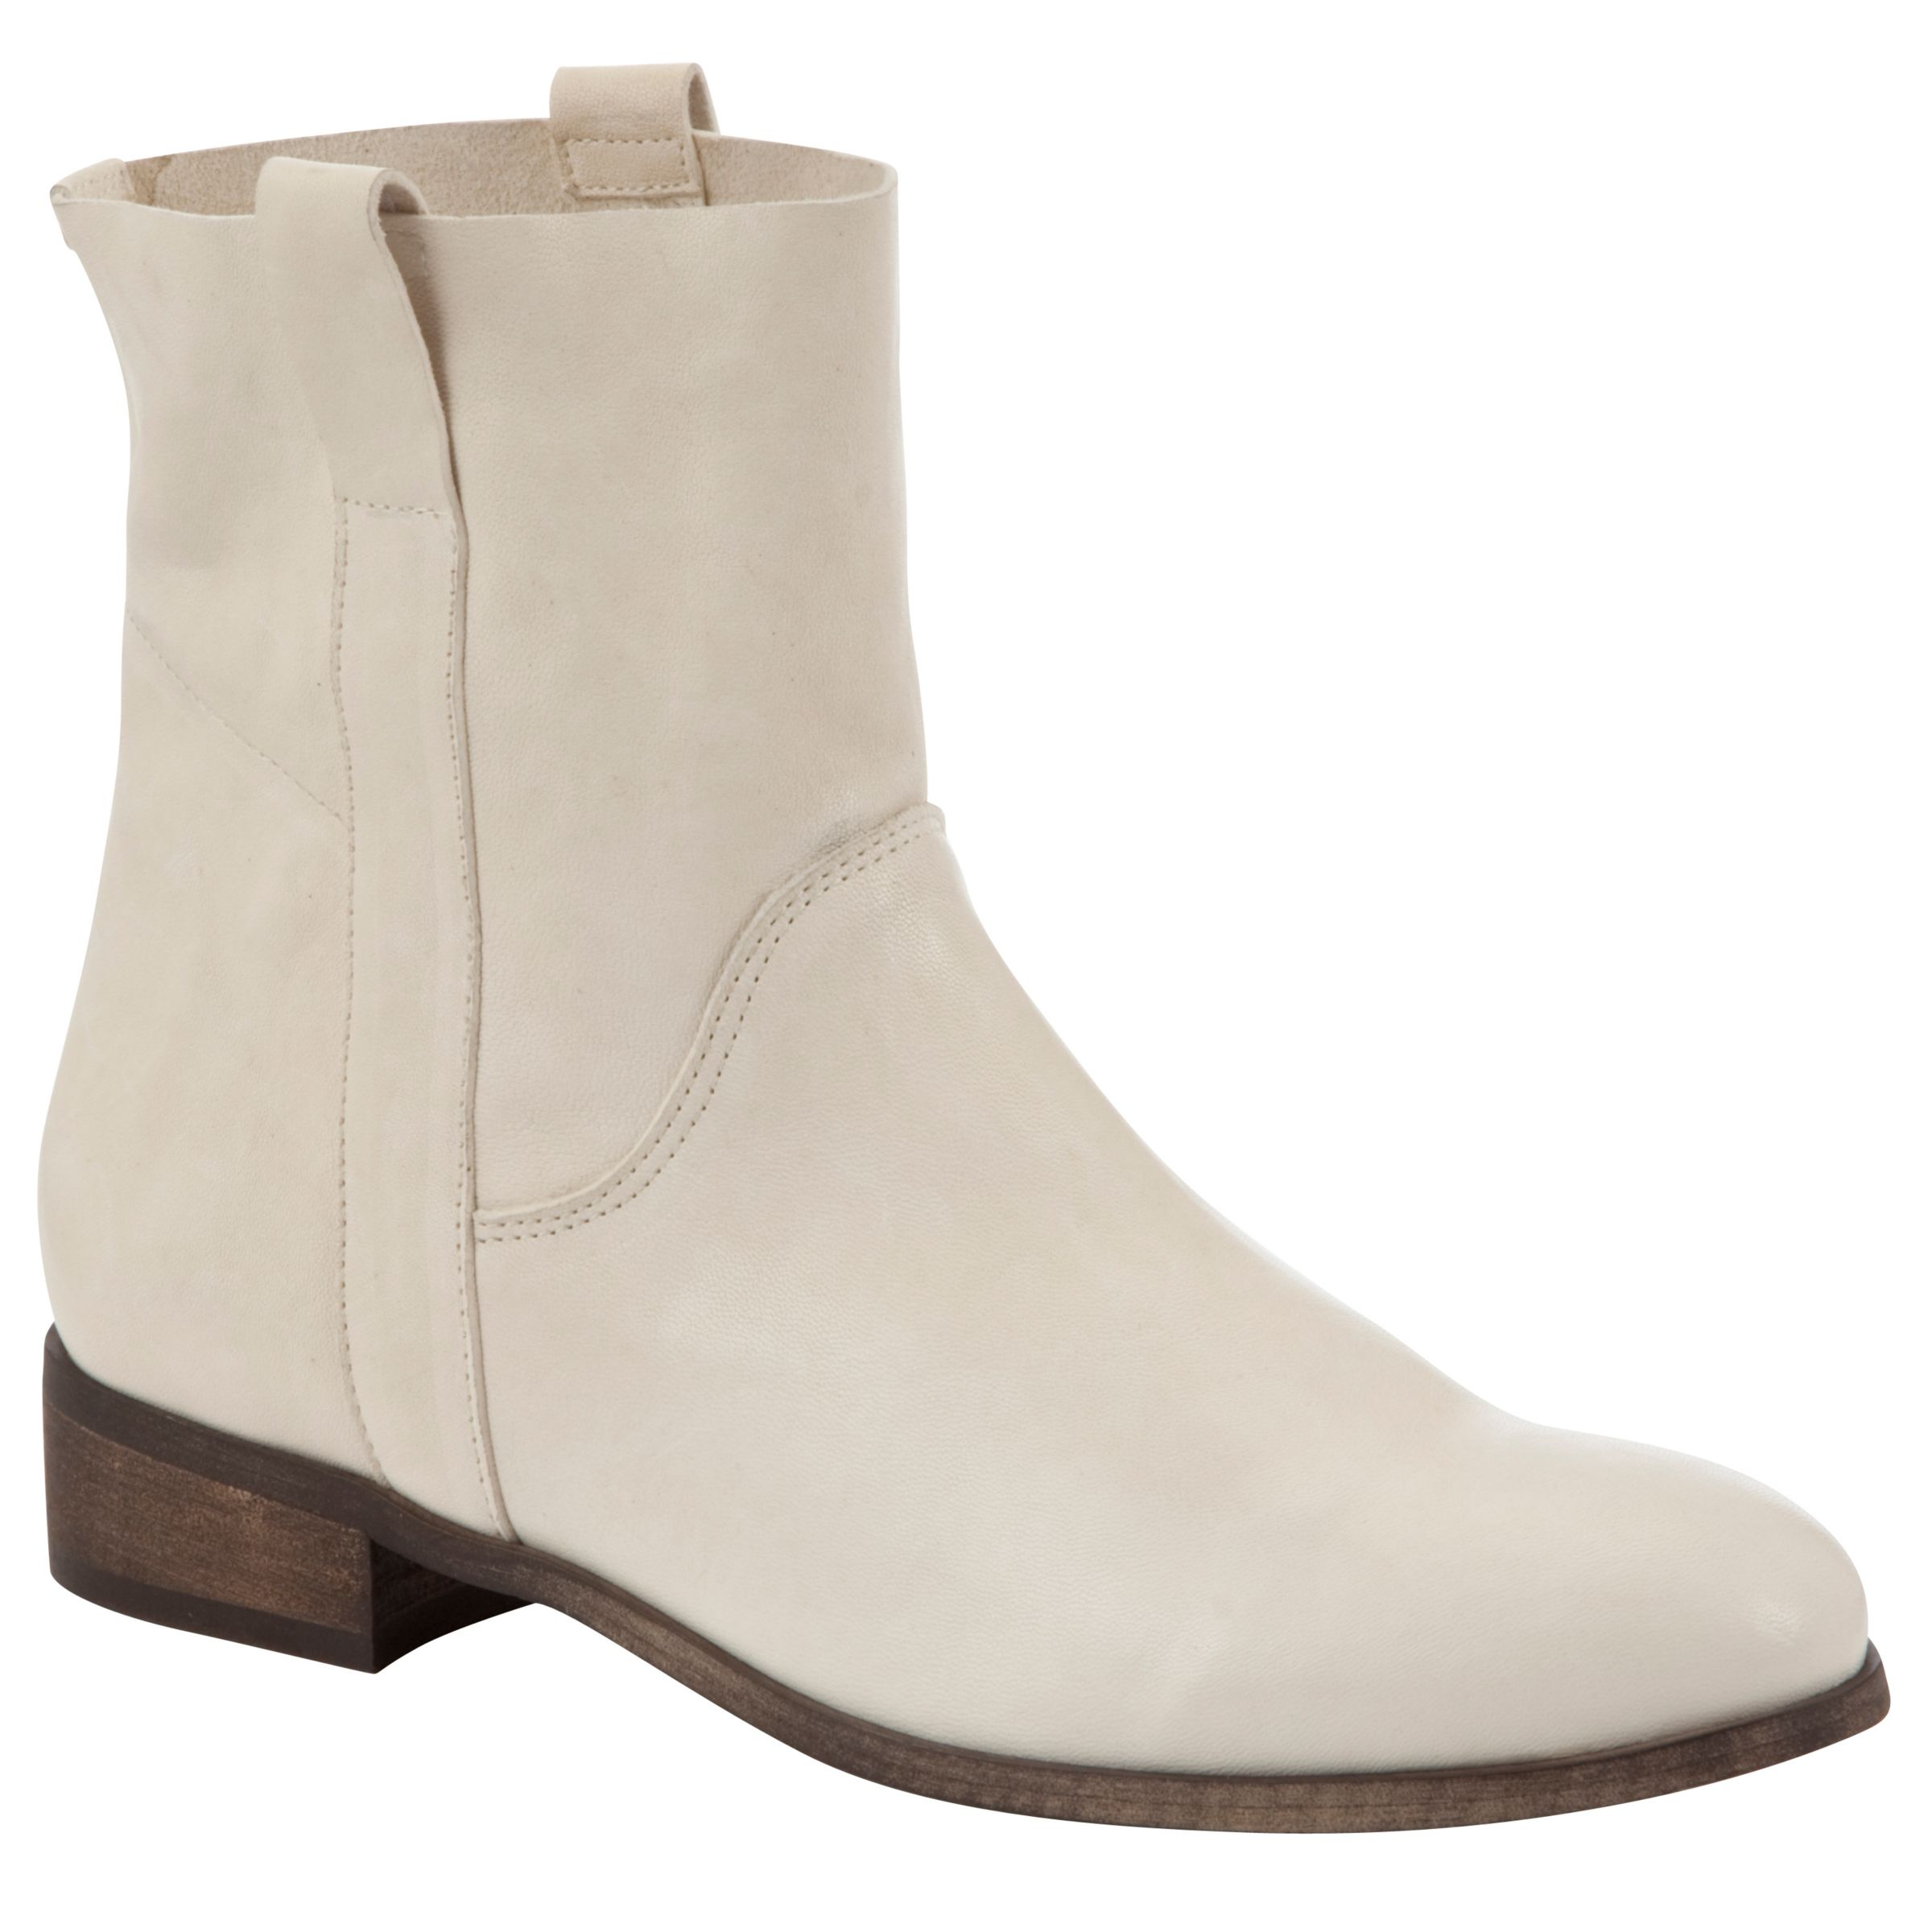 Kin By John Lewis Four Ankle Boots, White